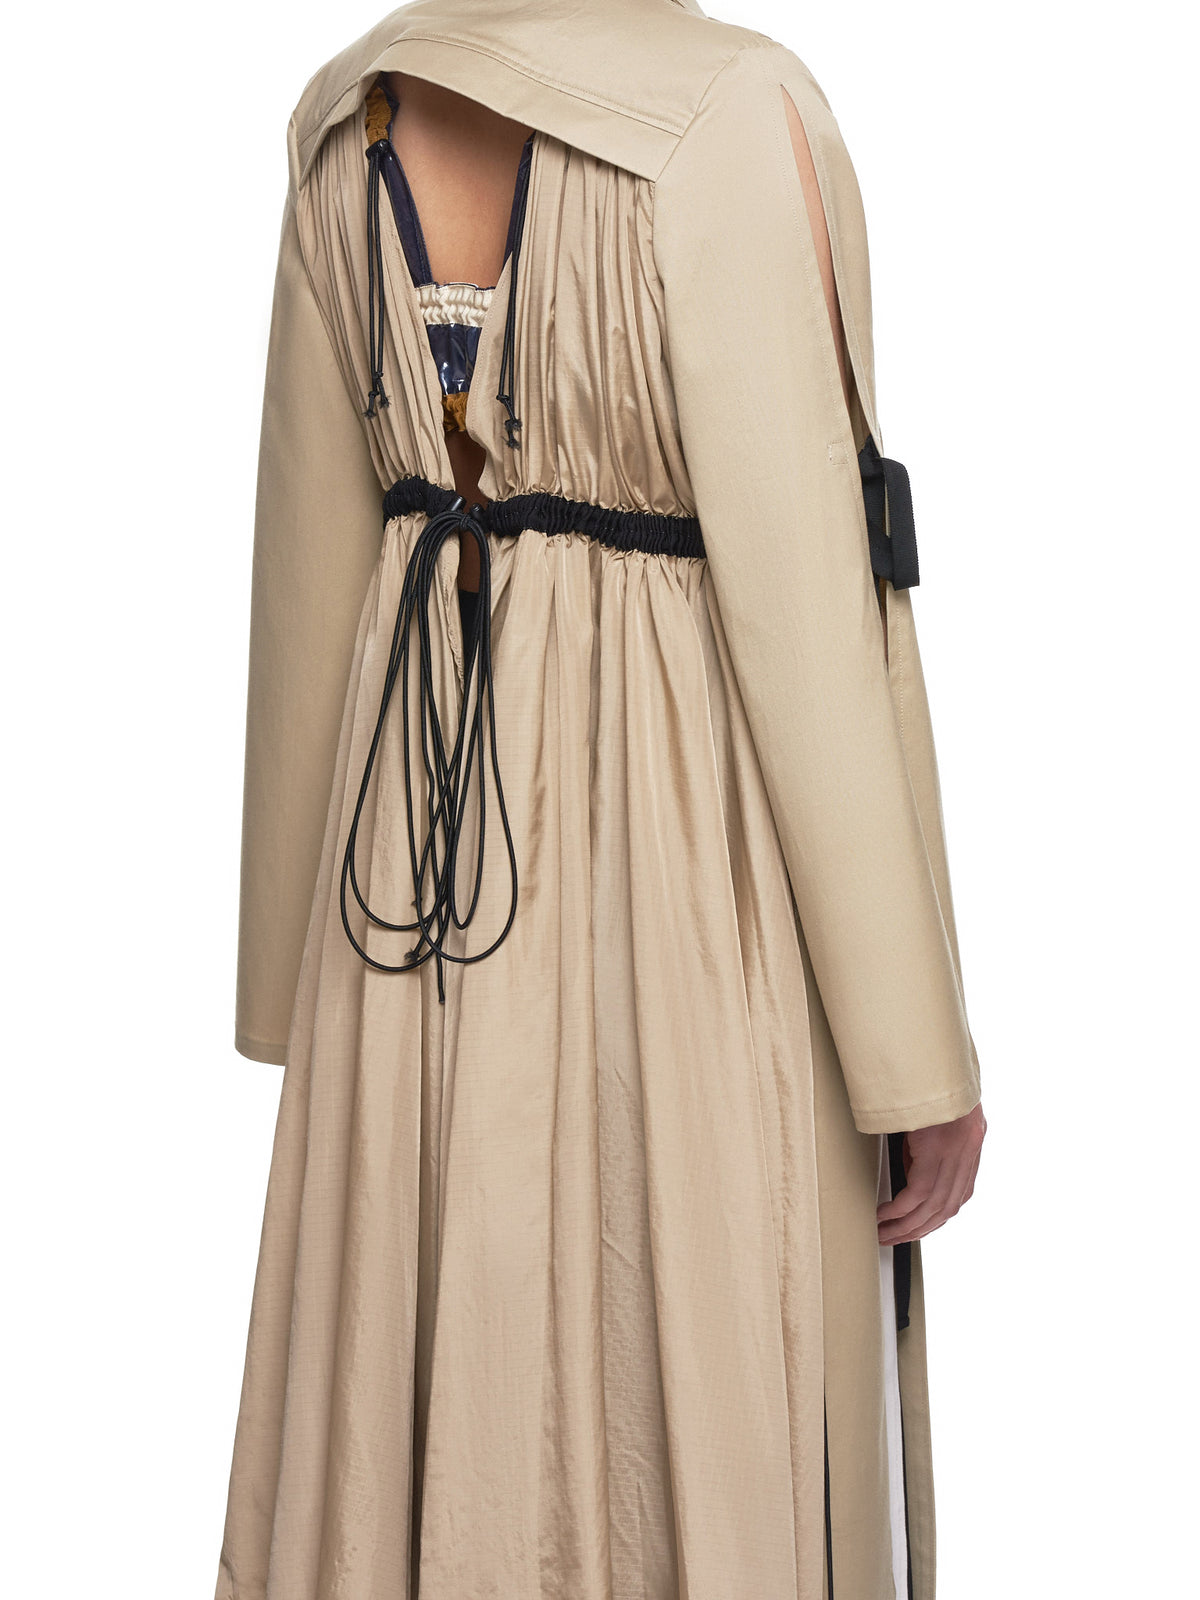 Shiroma Trench Coat - Hlorenzo detail 2